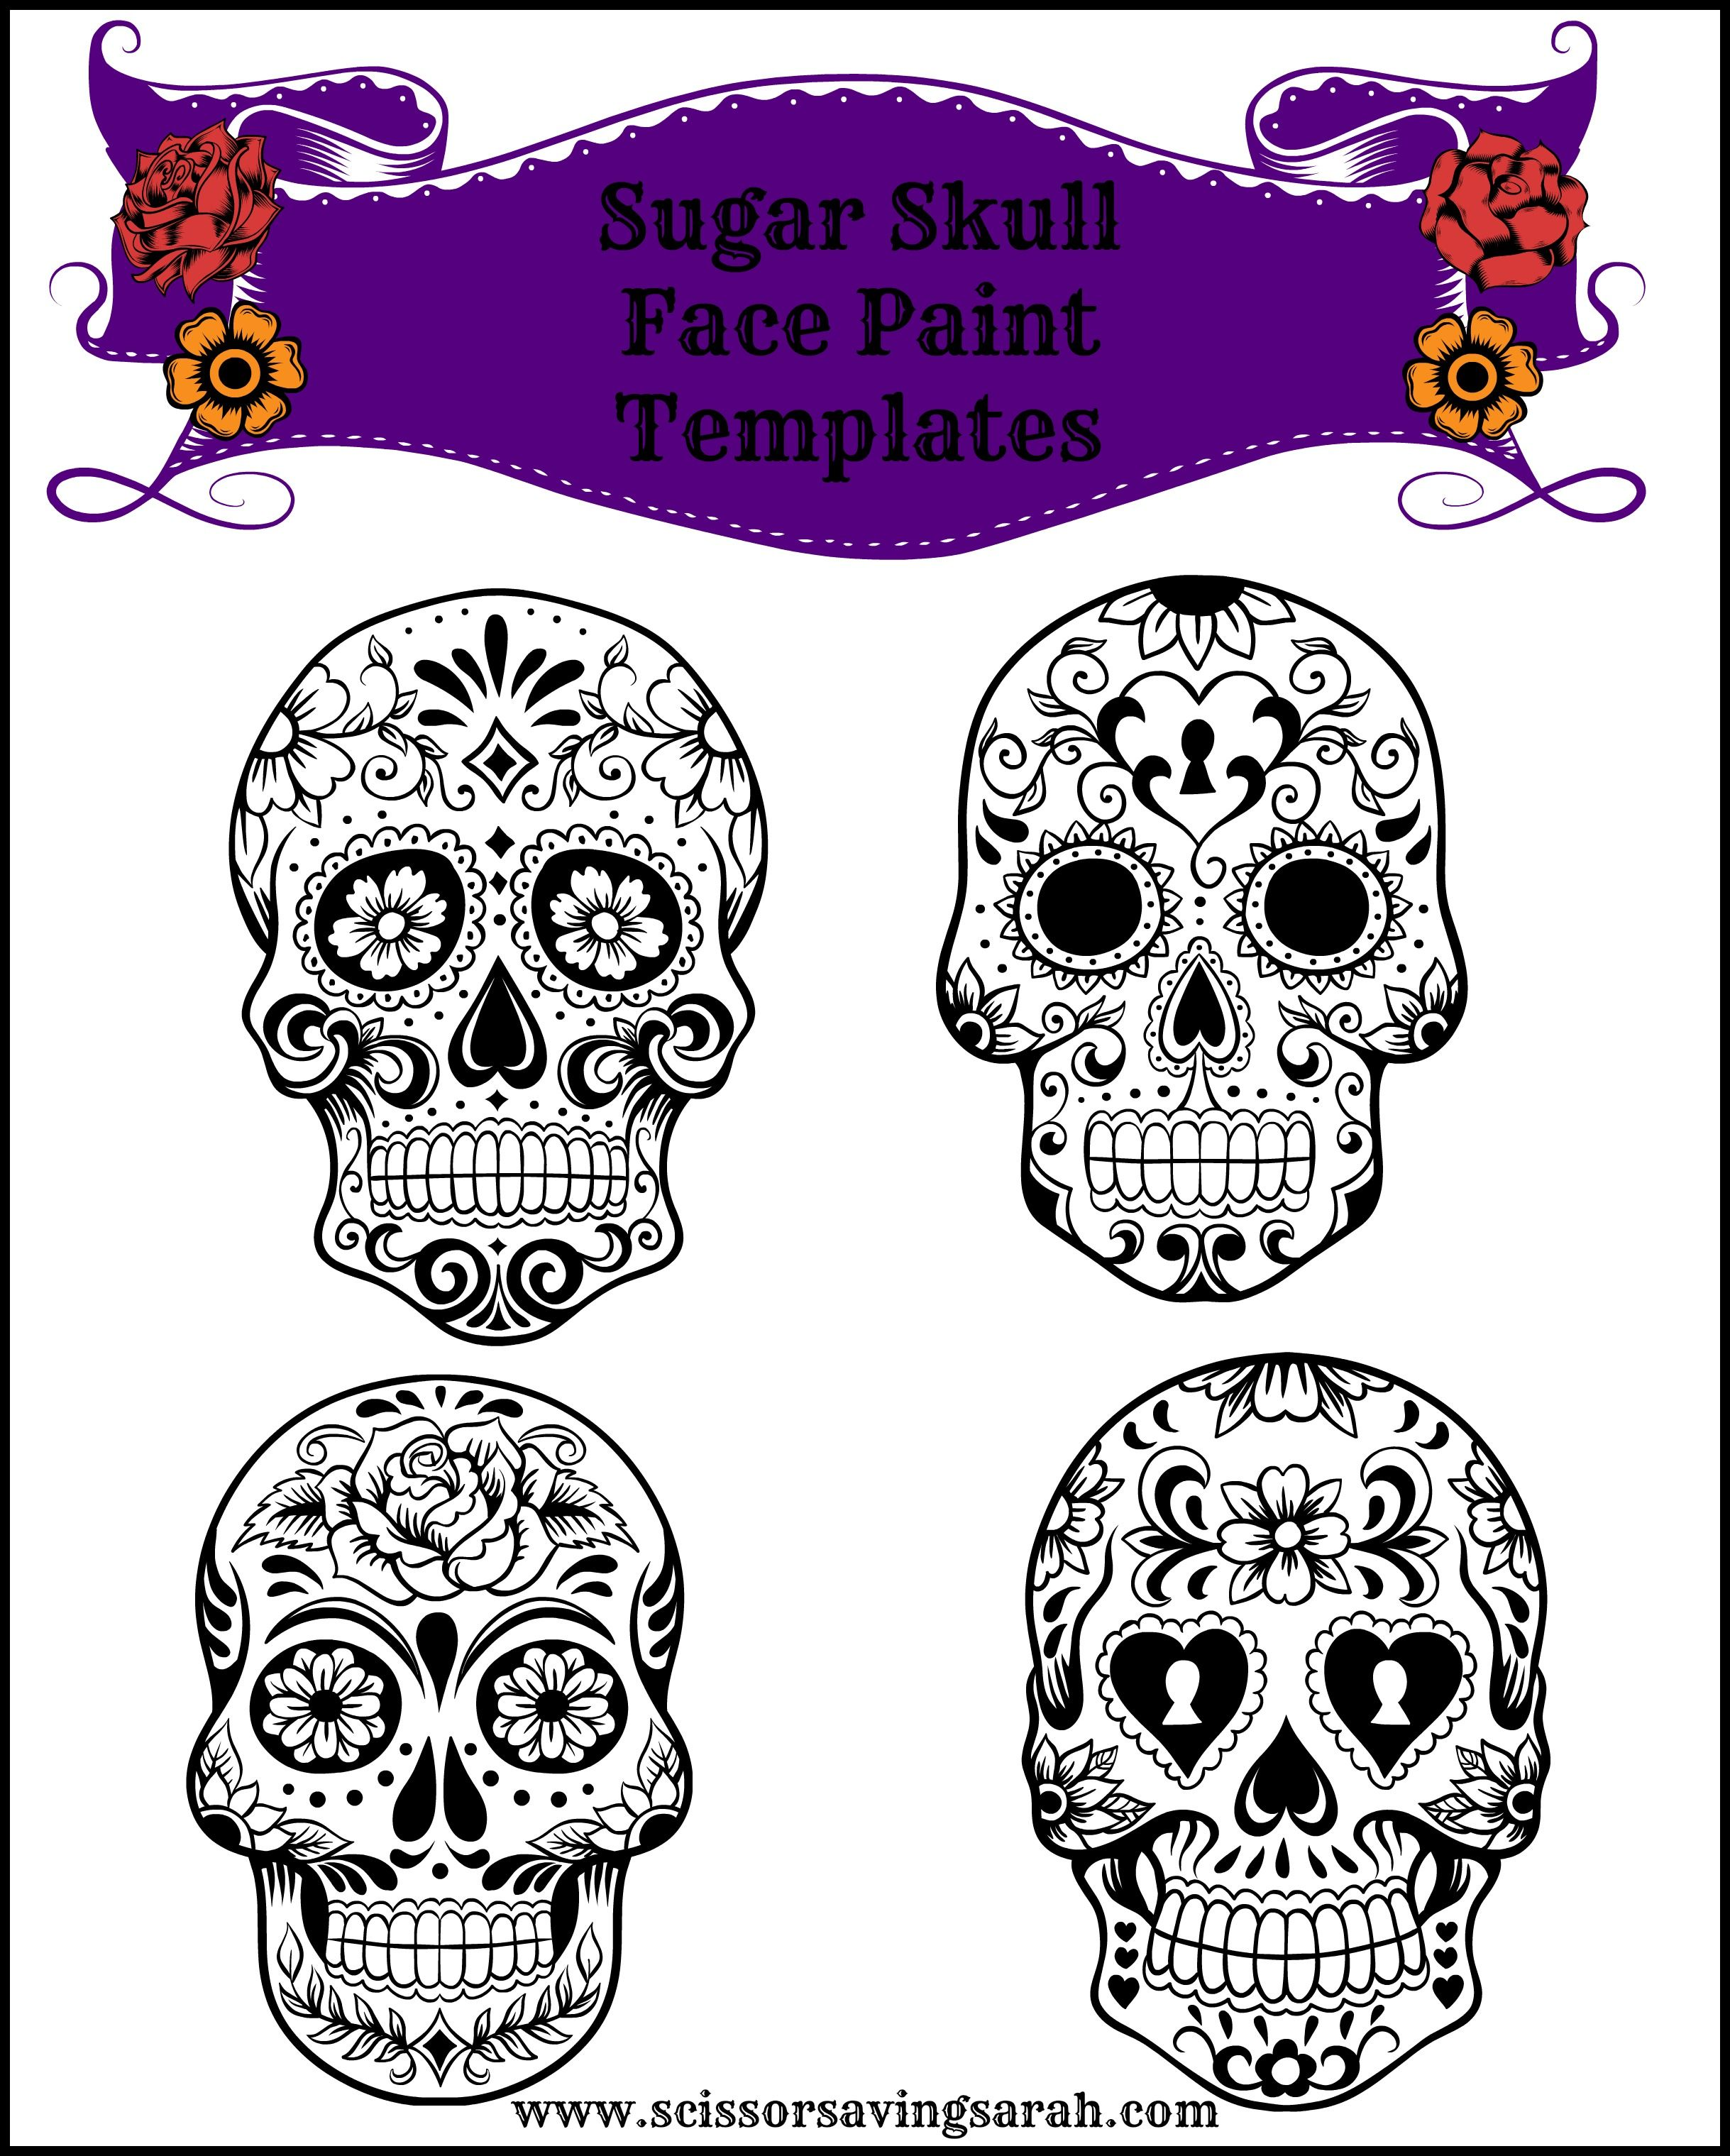 Awesome 1 Hexagon Template Huge 10 Steps To Creating A Resume Solid 10 Tips For A Great Resume 100 Powerful Resume Words Youthful 1099 Agreement Template Pink12 Hour Schedule Template Sugar Skull Face Paint Templates   Use Any Halloween Face Paint ..